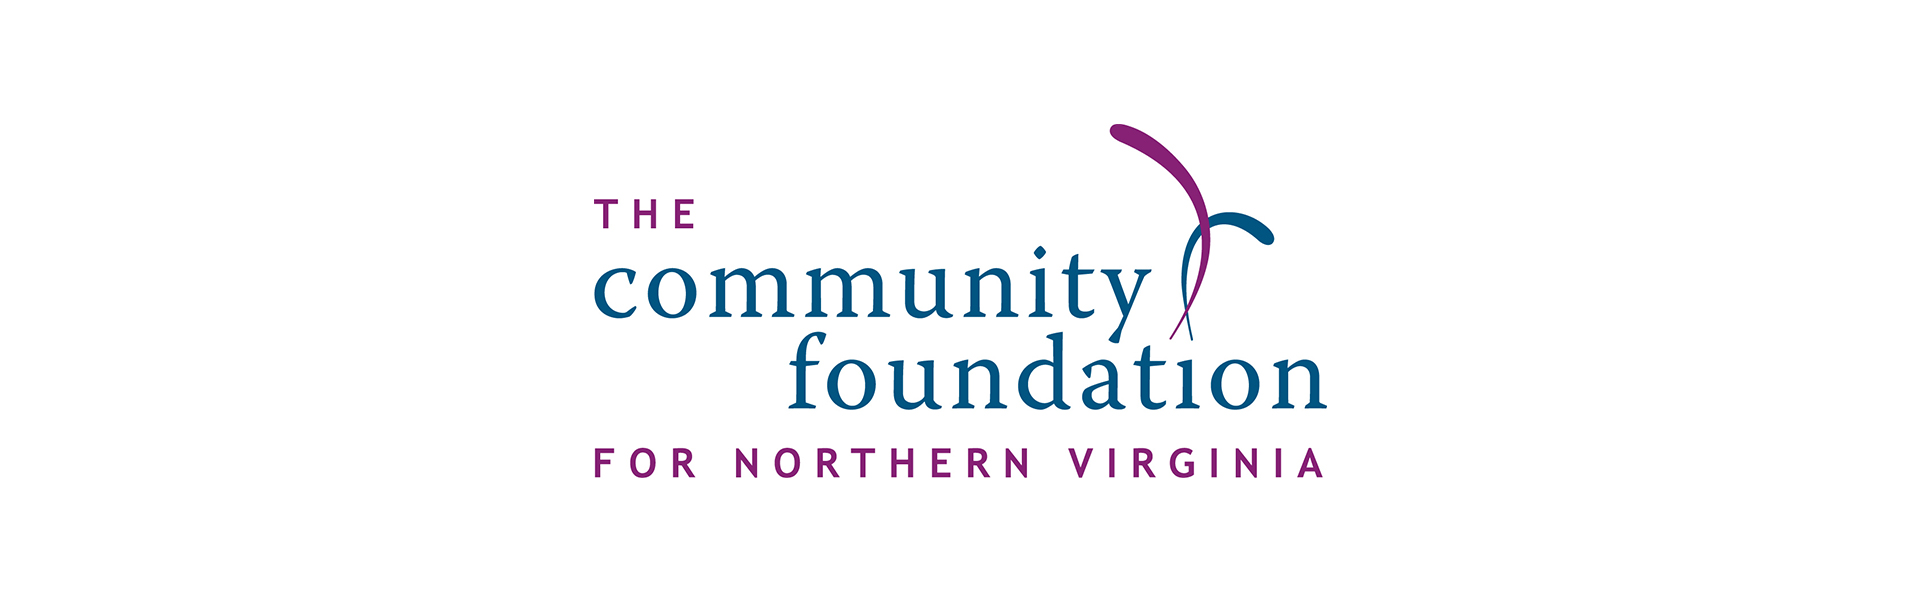 Heritage Client Community Foundation for Northern Virginia's Annual Gala a Major Success